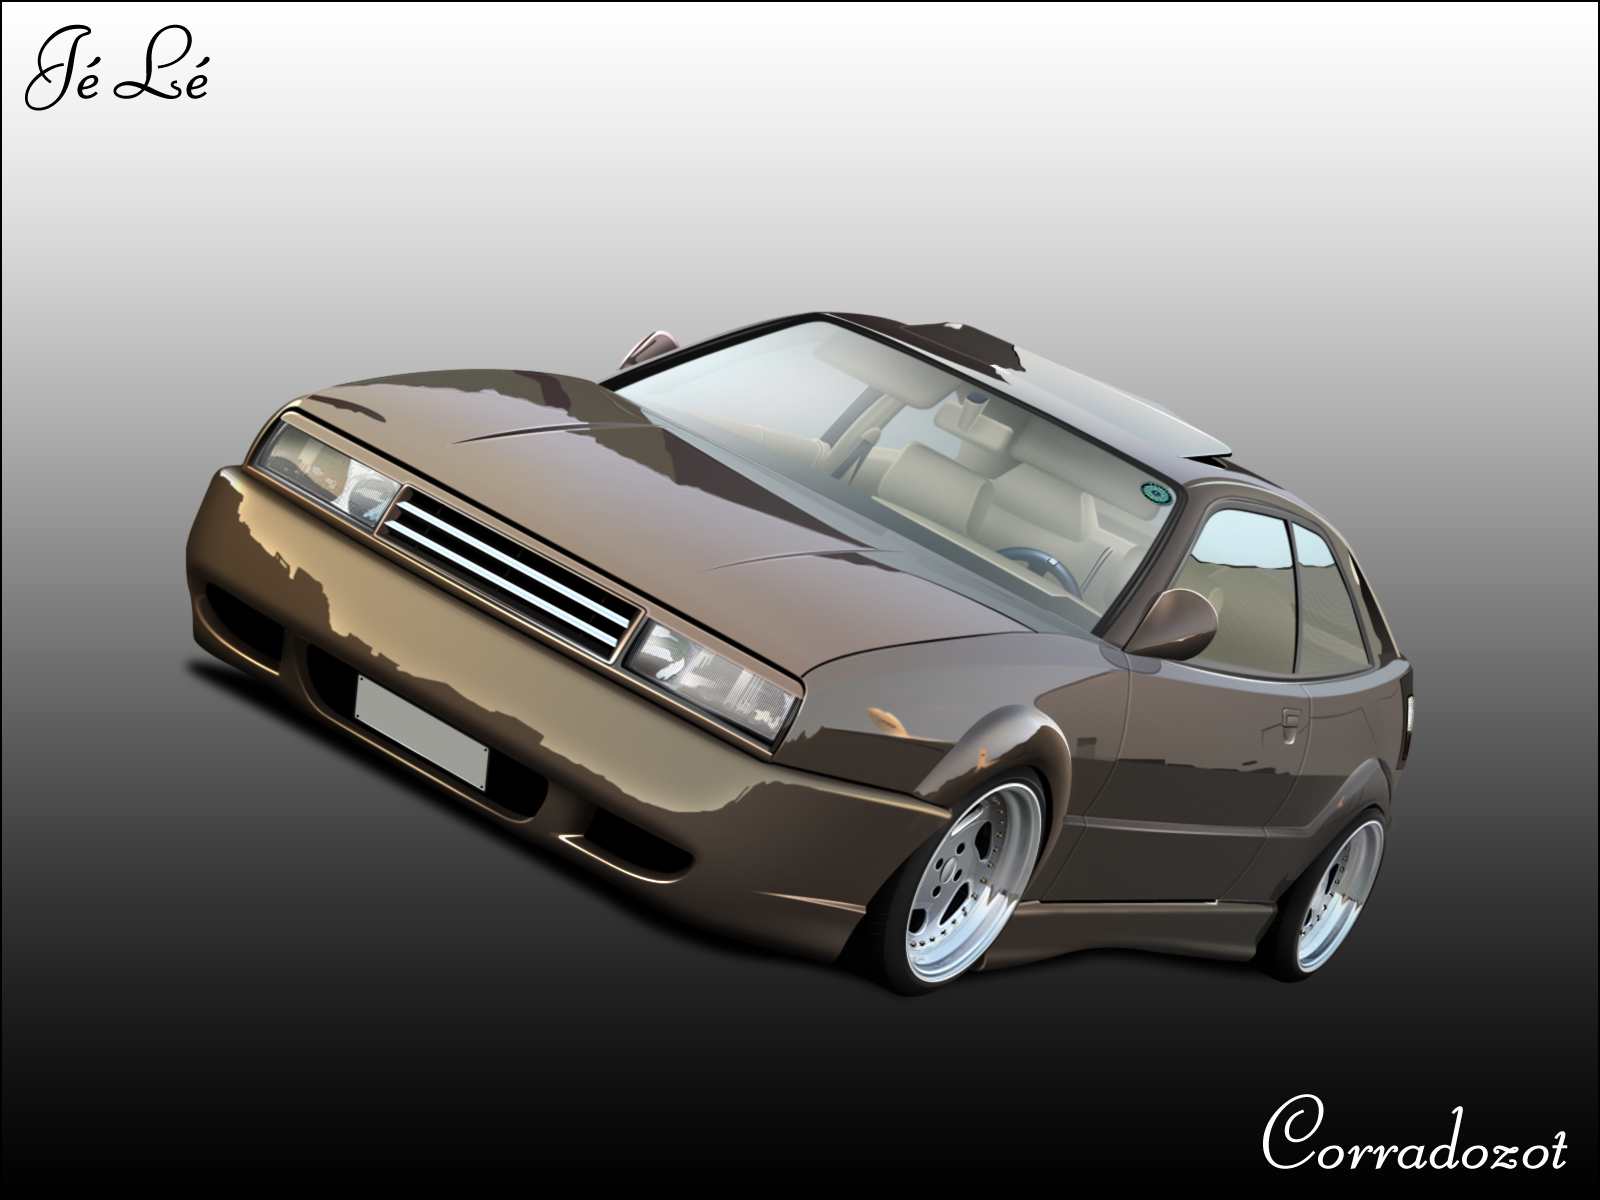 VW Corrado Cartoon by LeemansJ